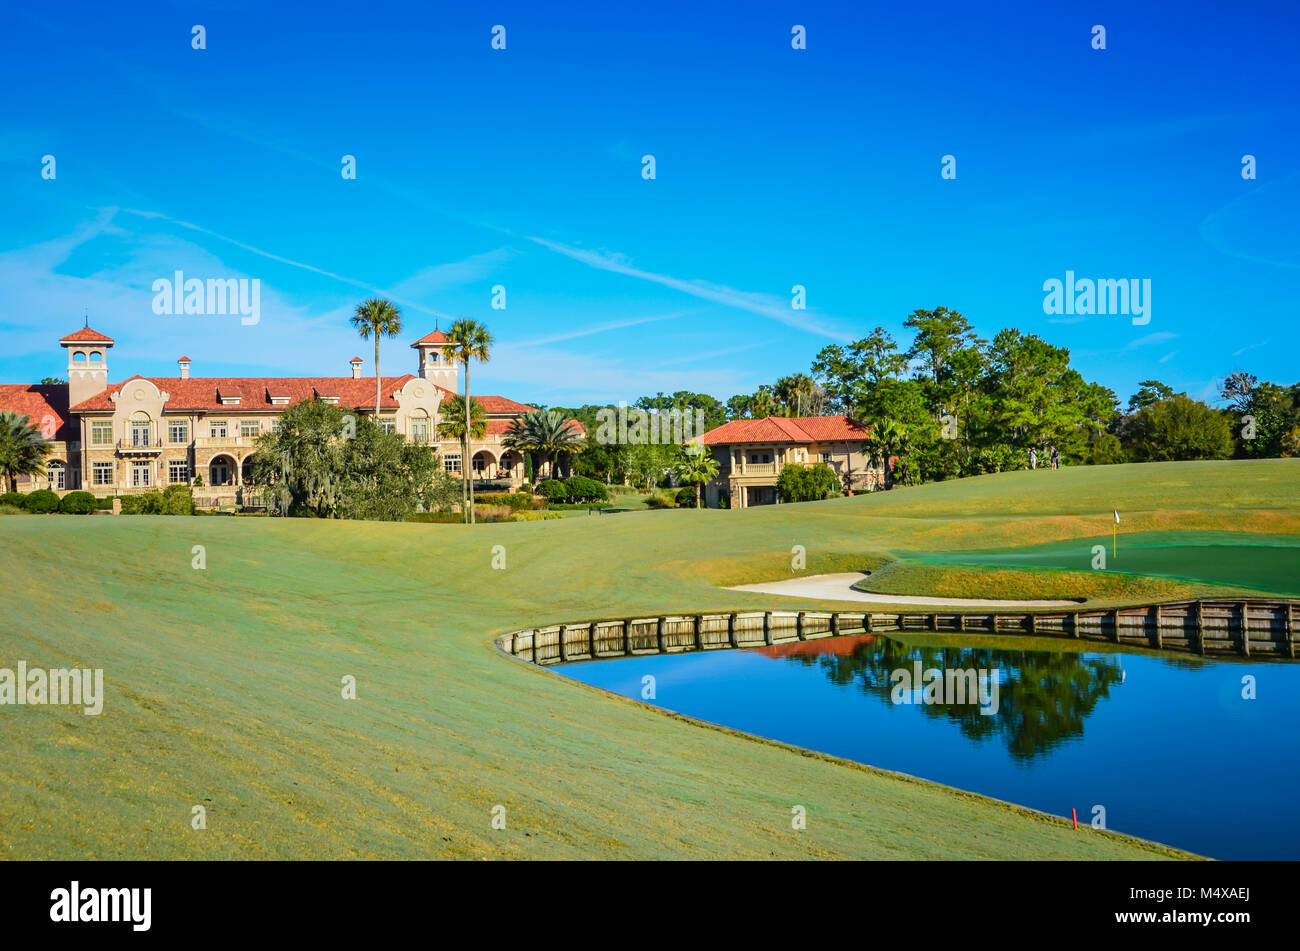 Next to the famous golf course, the The Players Championship Sawgrass Clubhouse is a posh luxury resort. - Stock Image